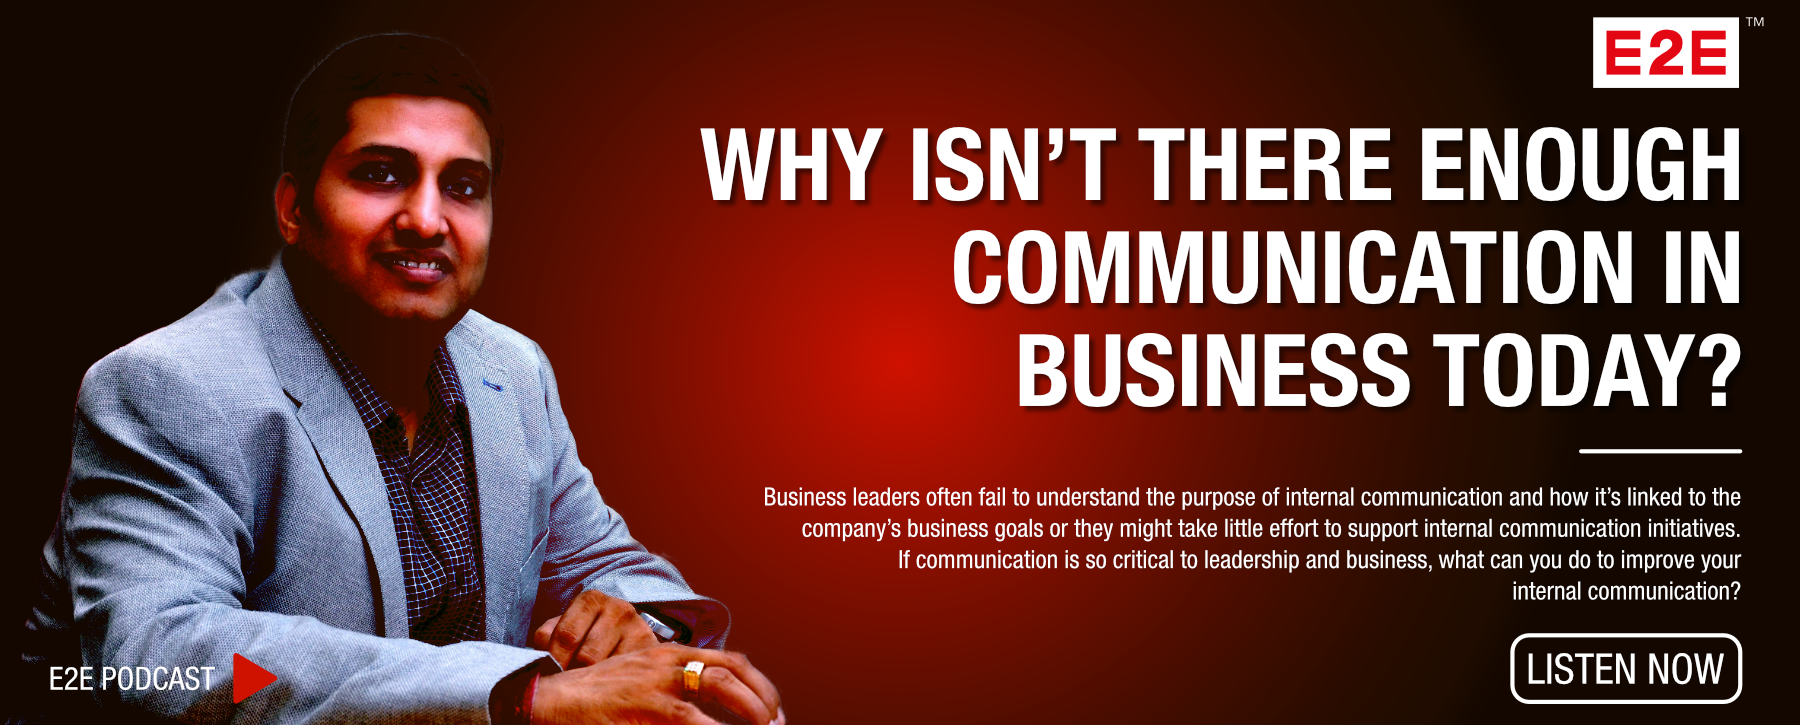 Episode 2: Why isn't there enough communication in business today?